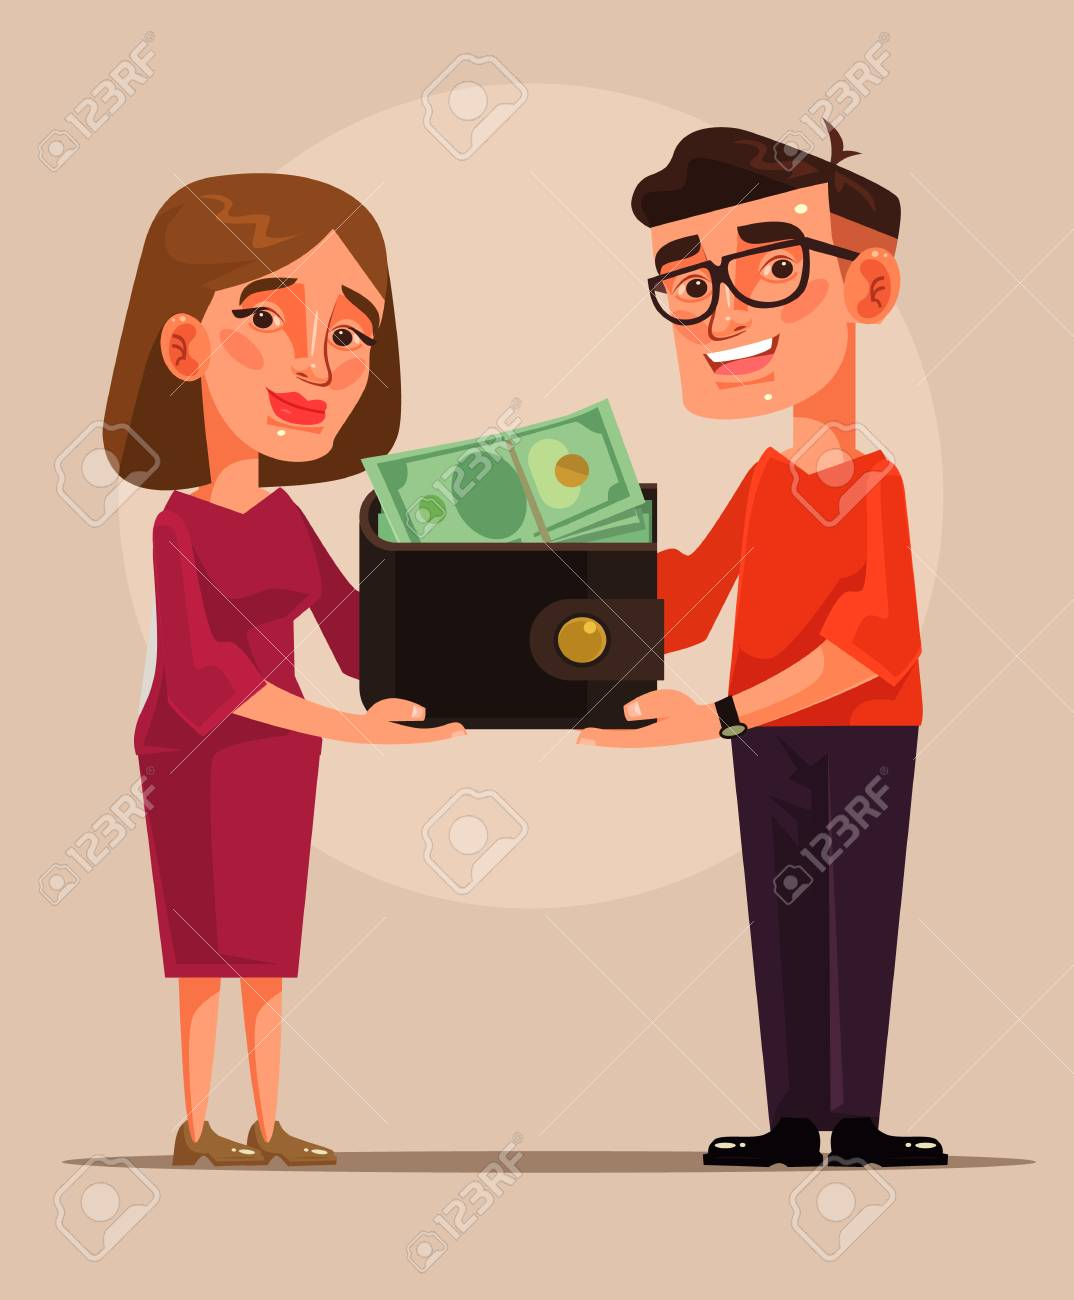 Young family budget cartoon illustration - 95644726